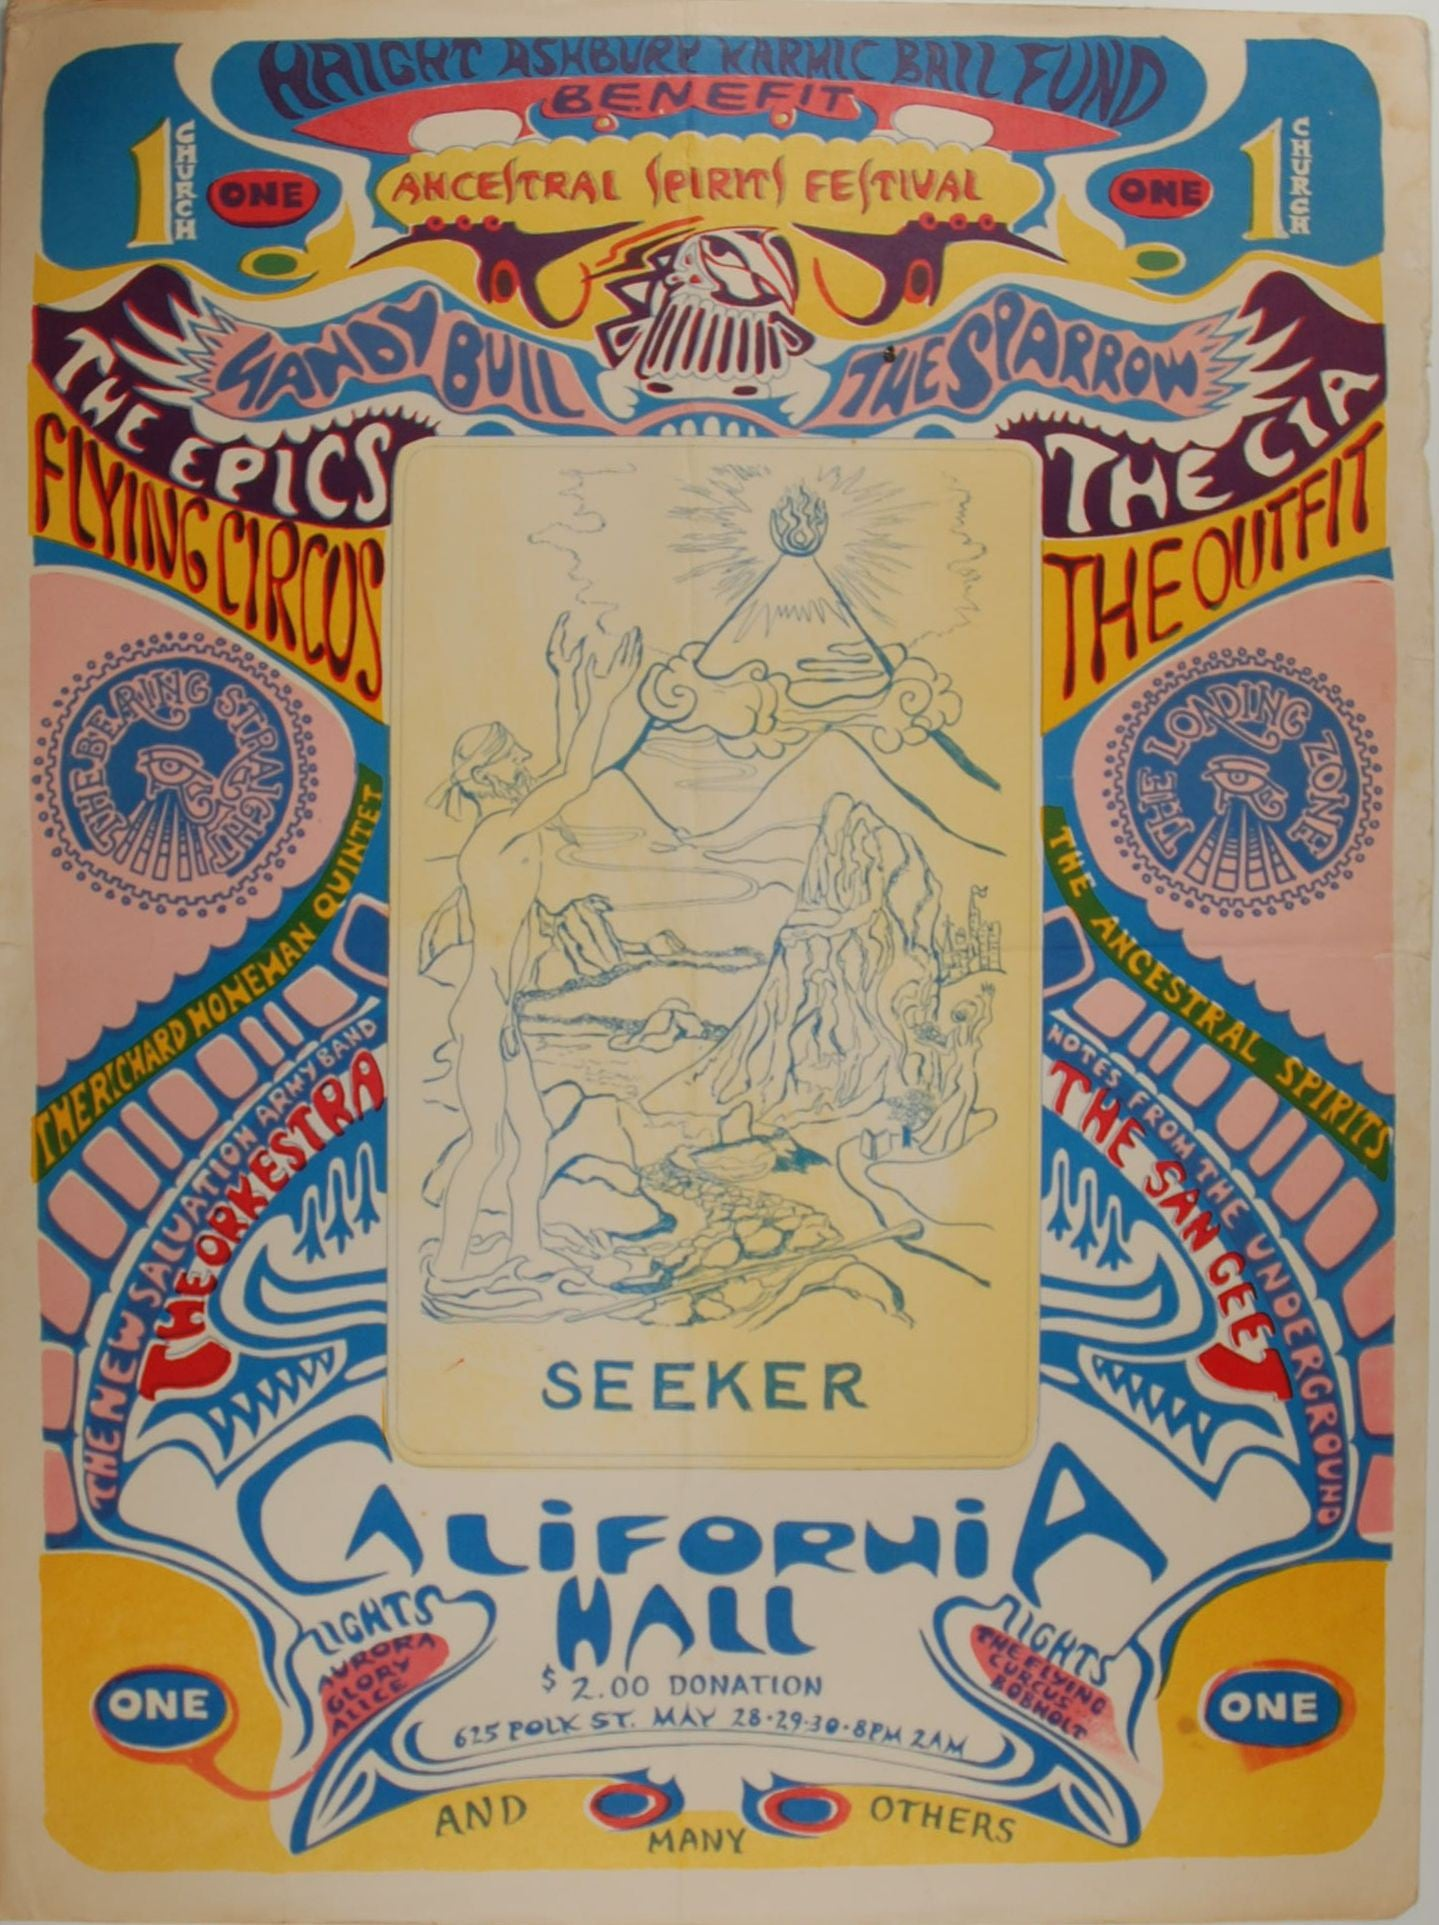 Ancestral Spirits Festival, California Hall, San Francisco 1967